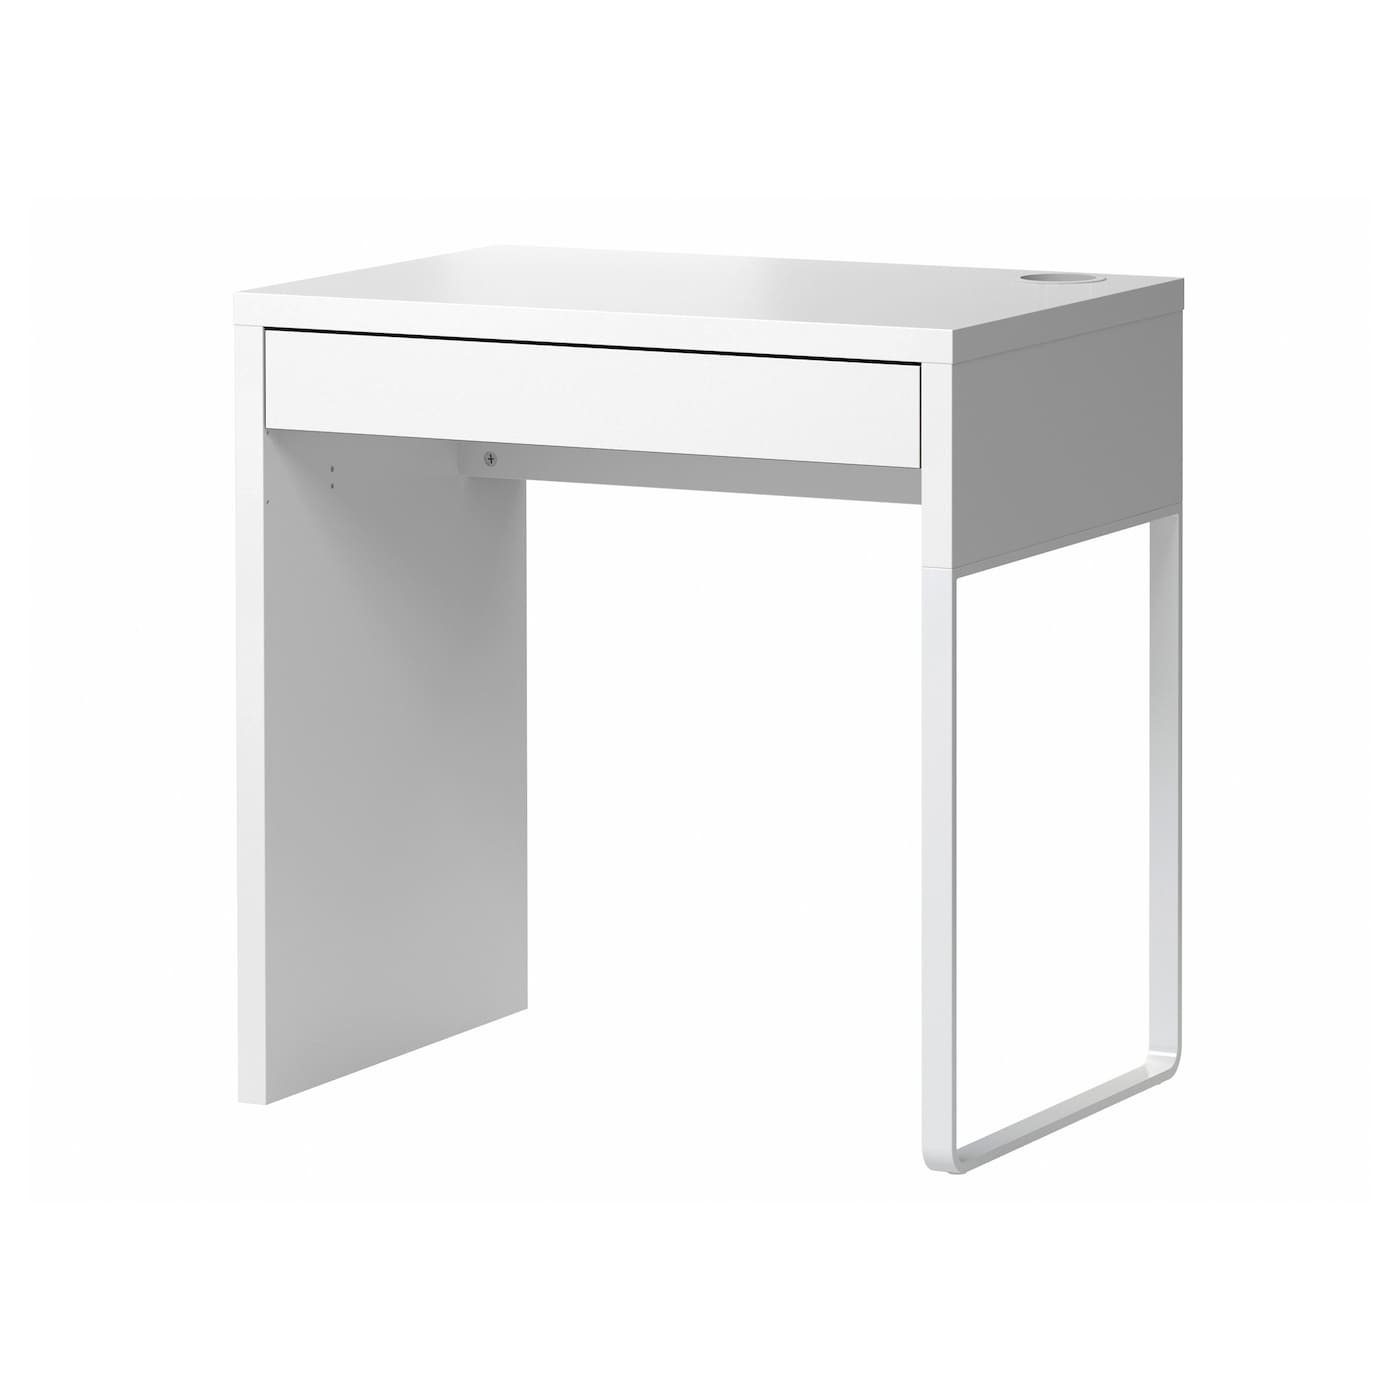 Beau IKEA MICKE Desk You Can Mount The Legs To The Right Or Left, According To